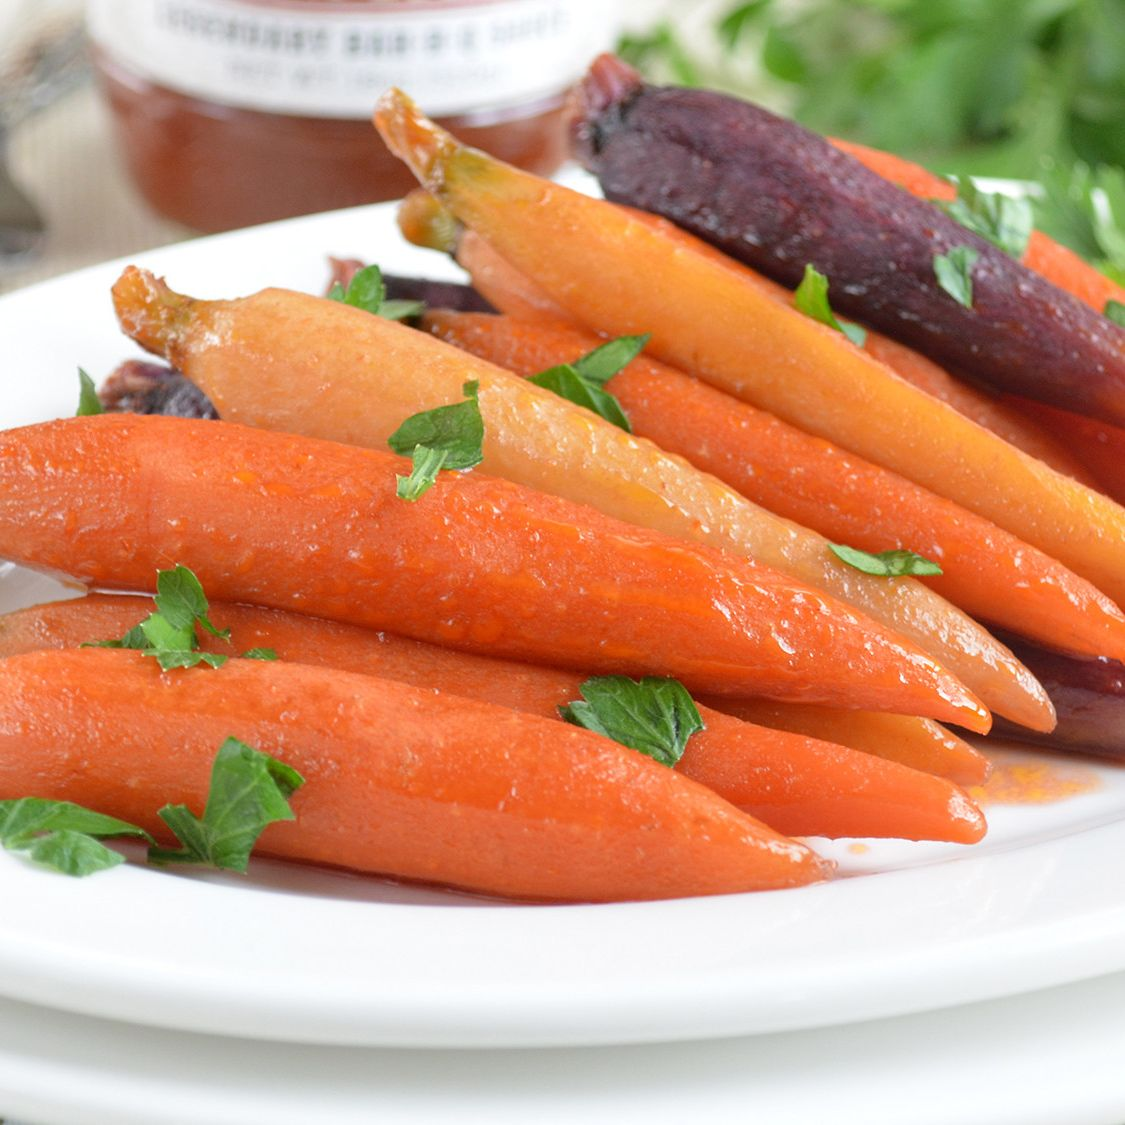 hickory_bourbon_and_brown_sugar_glazed_carrots.jpg